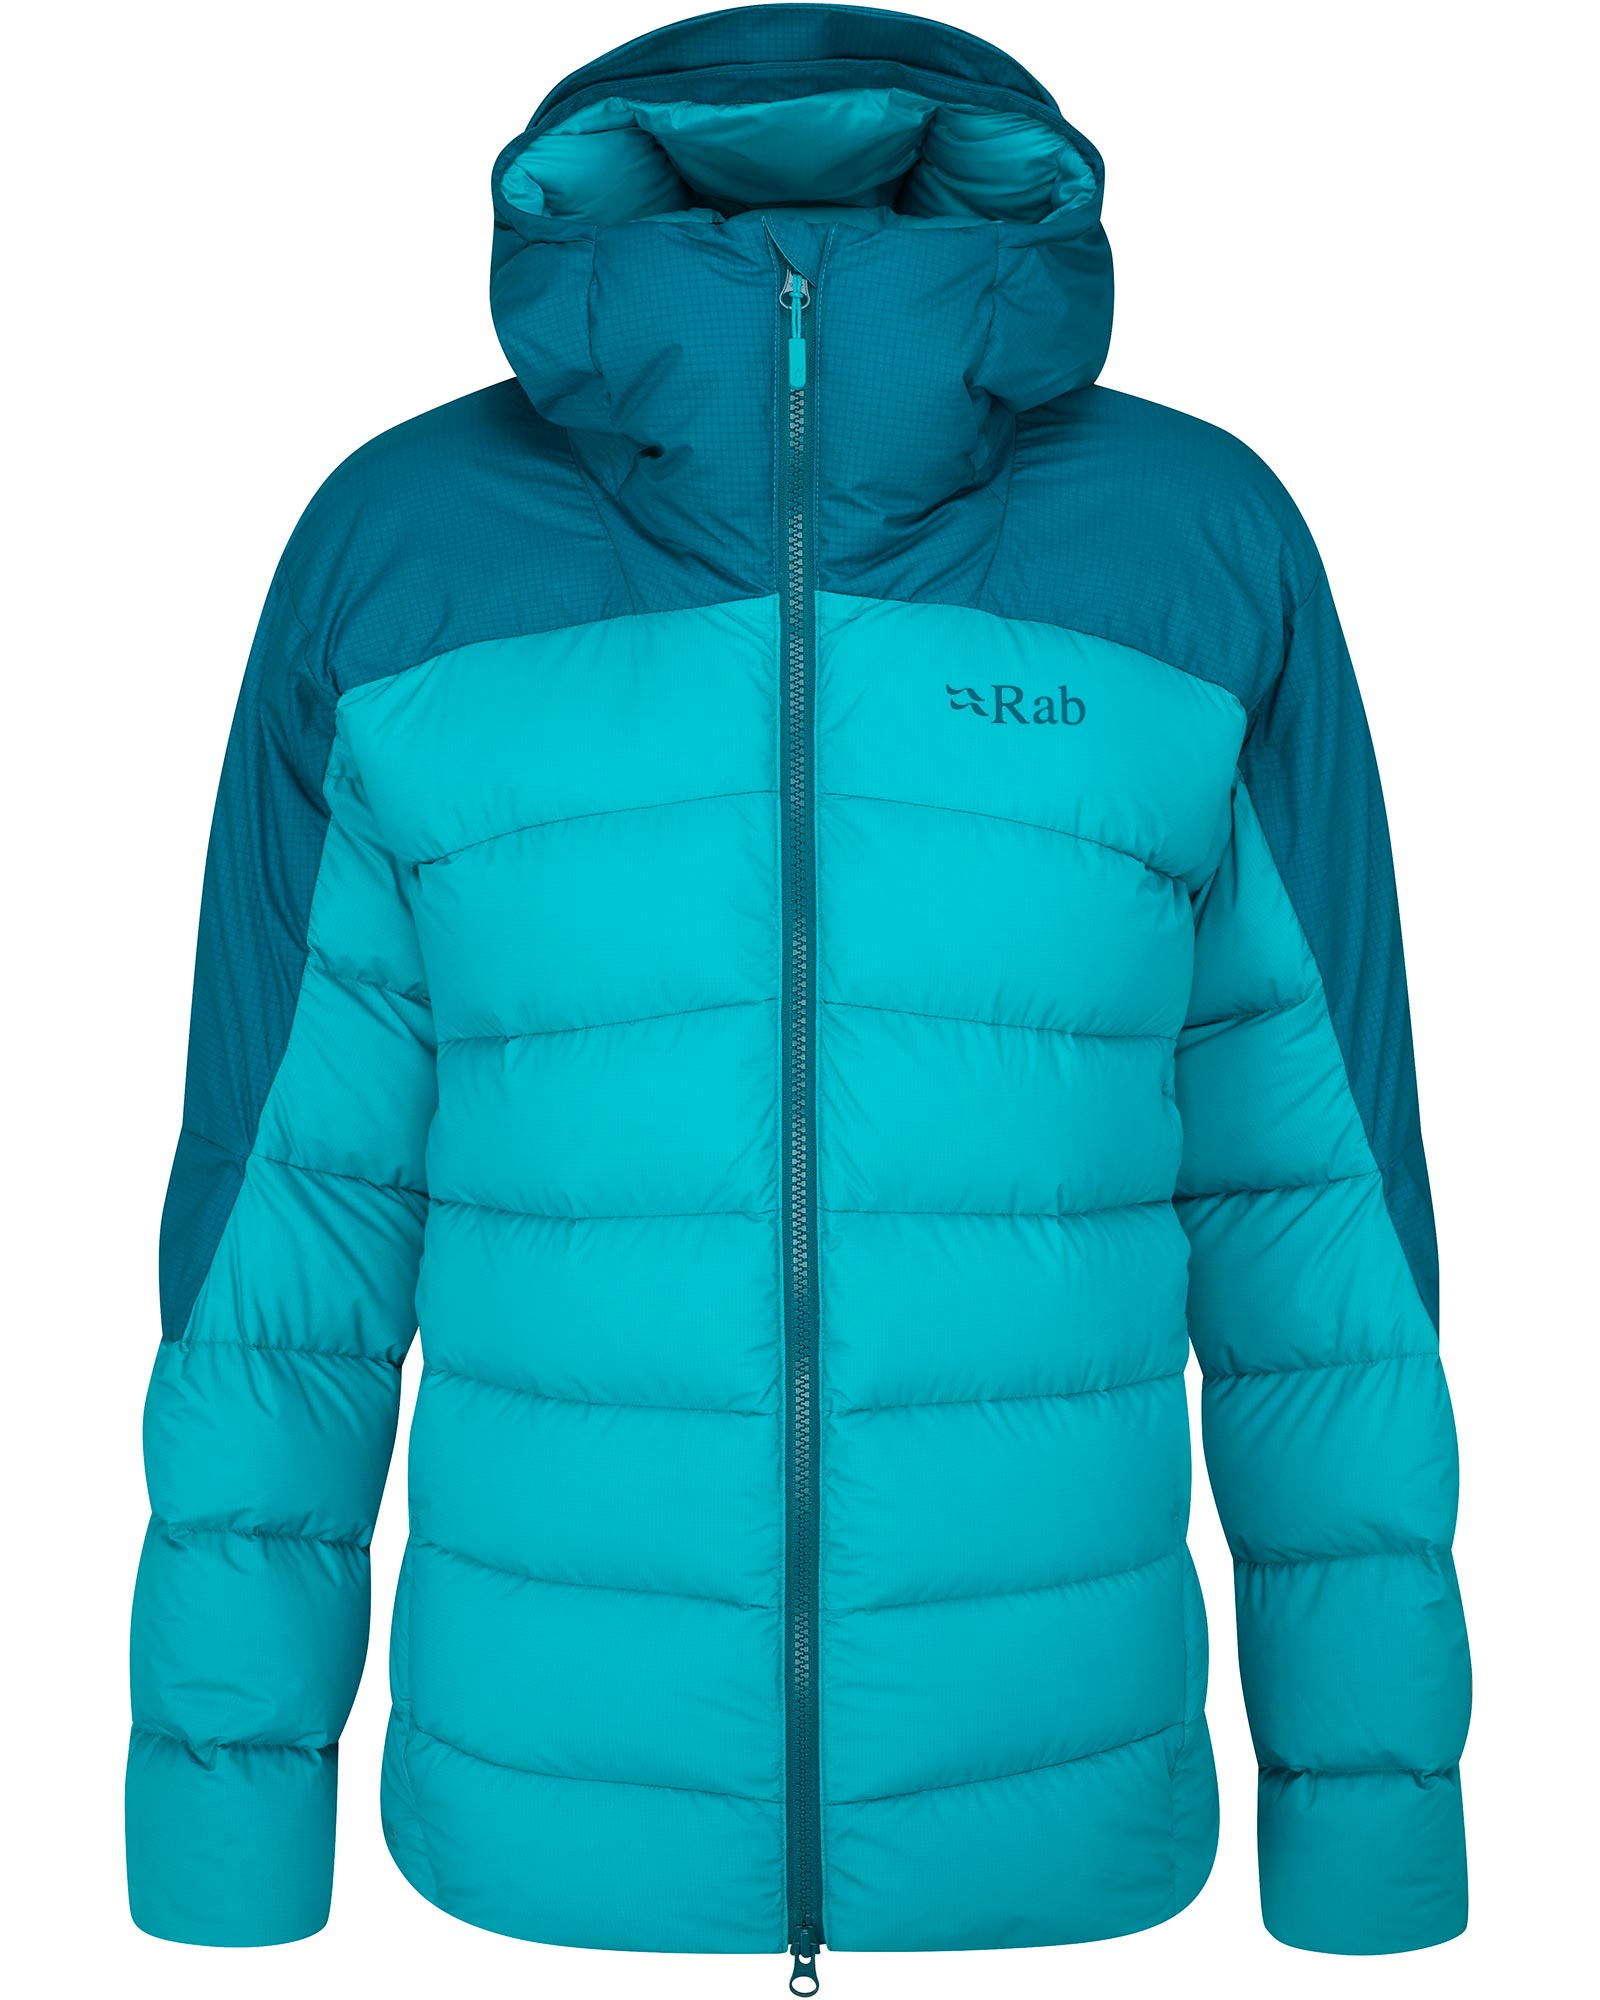 Quiksilver Mission Printed Youth Ski Jacket K14+